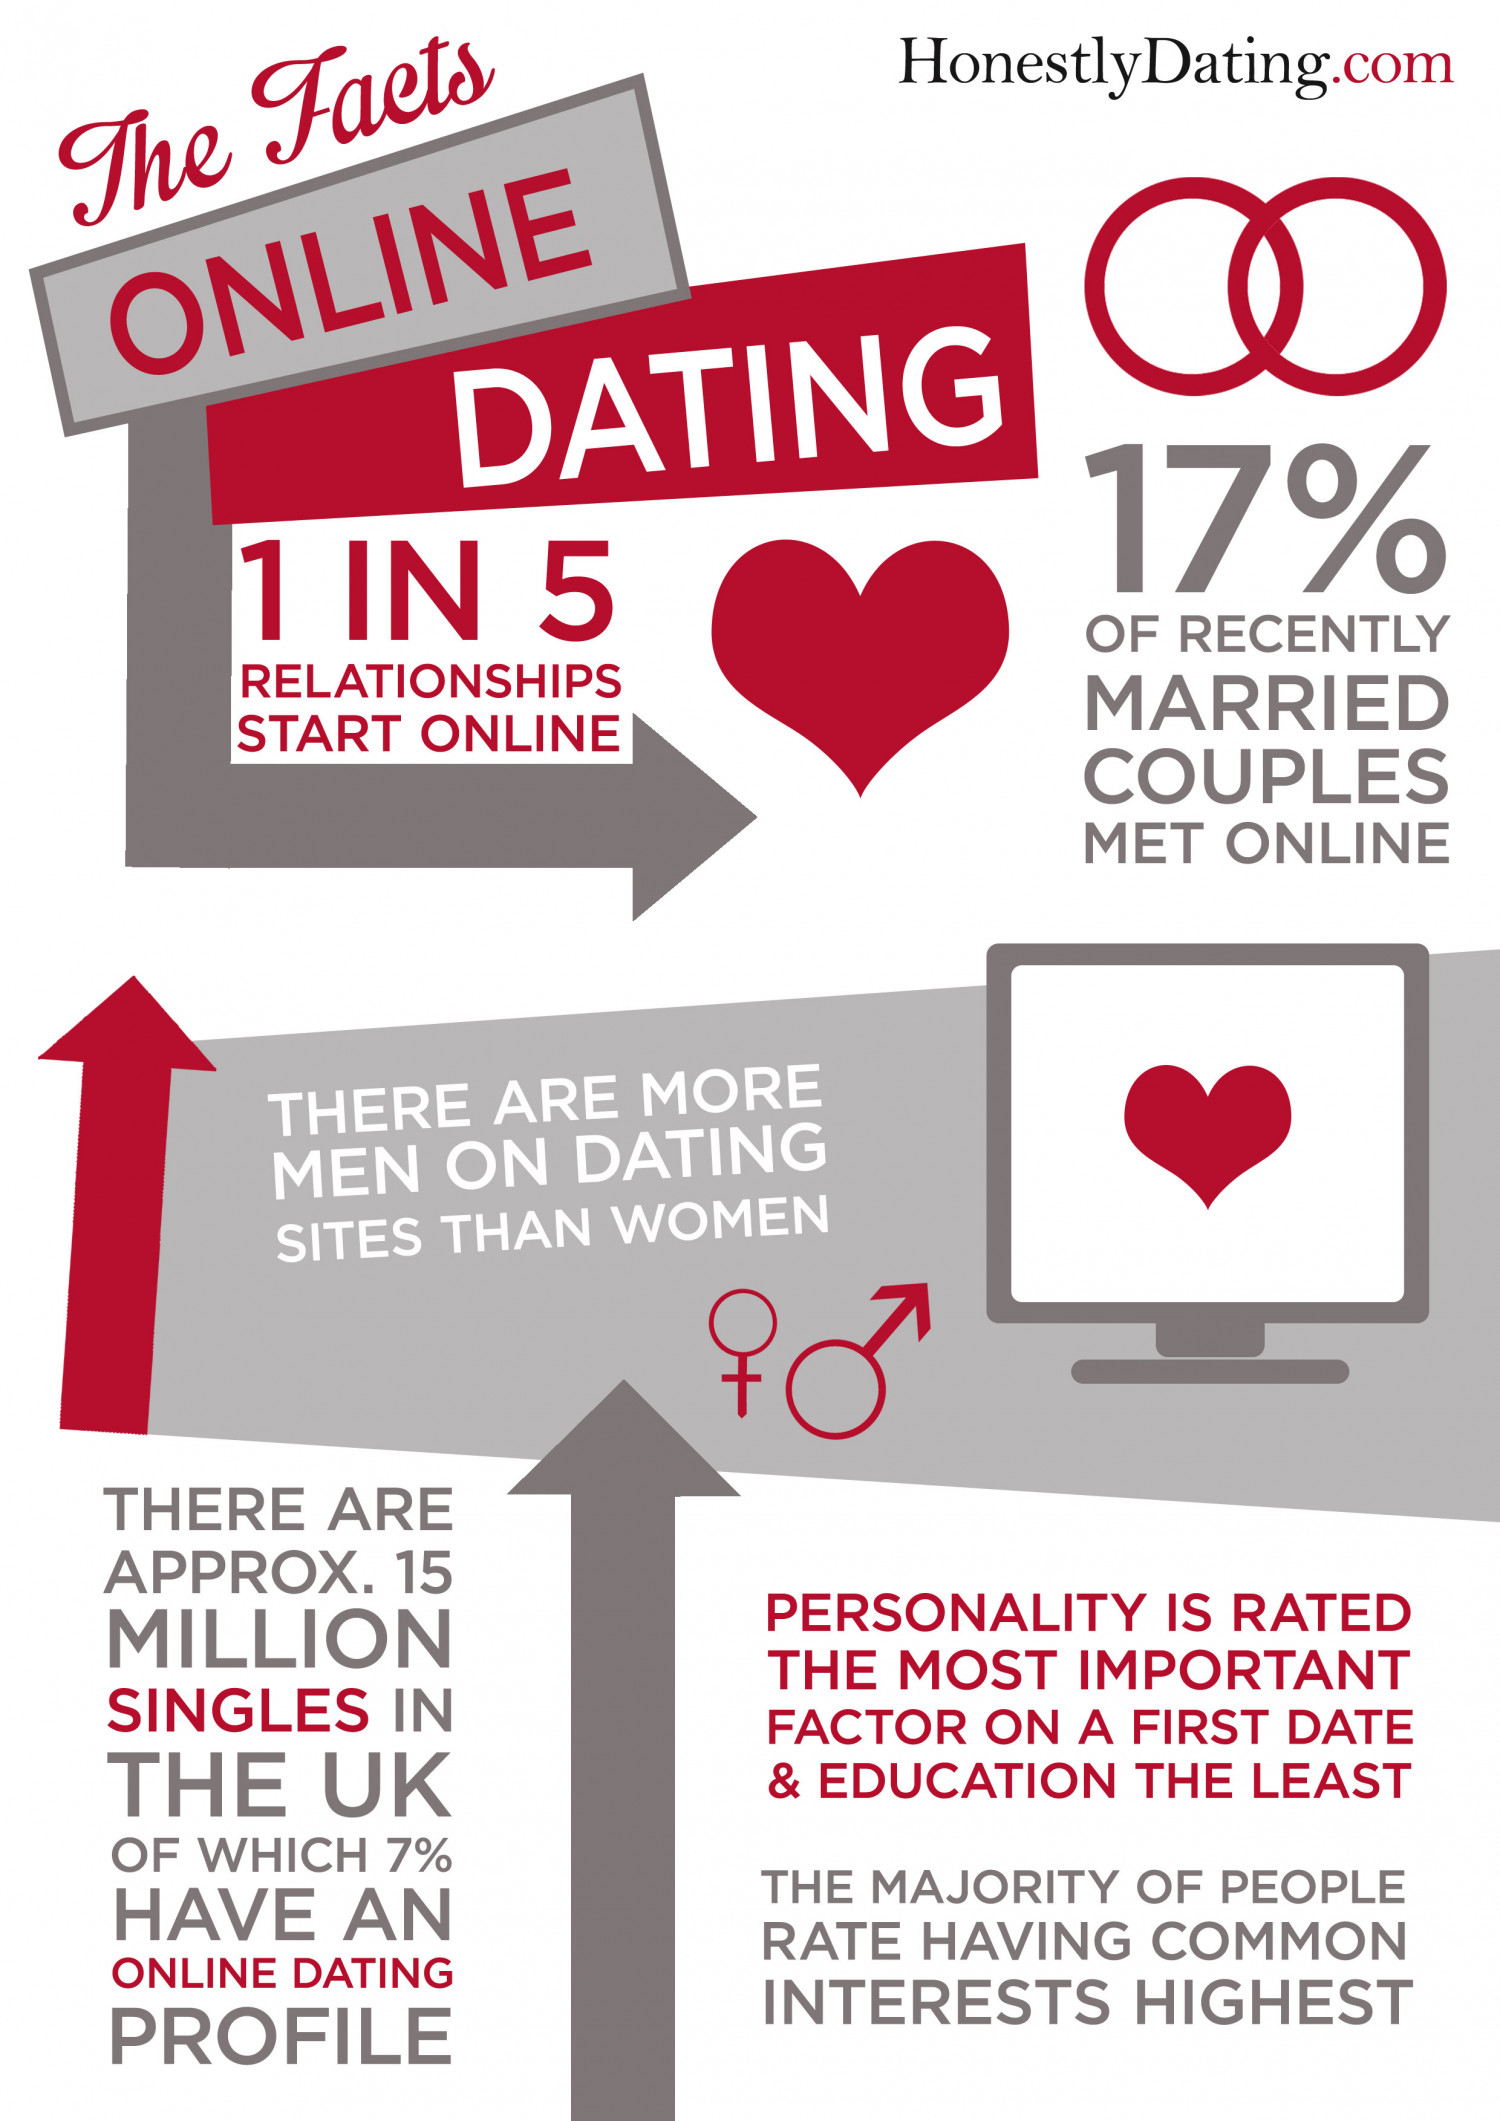 Dating Website Has Best Success Rate